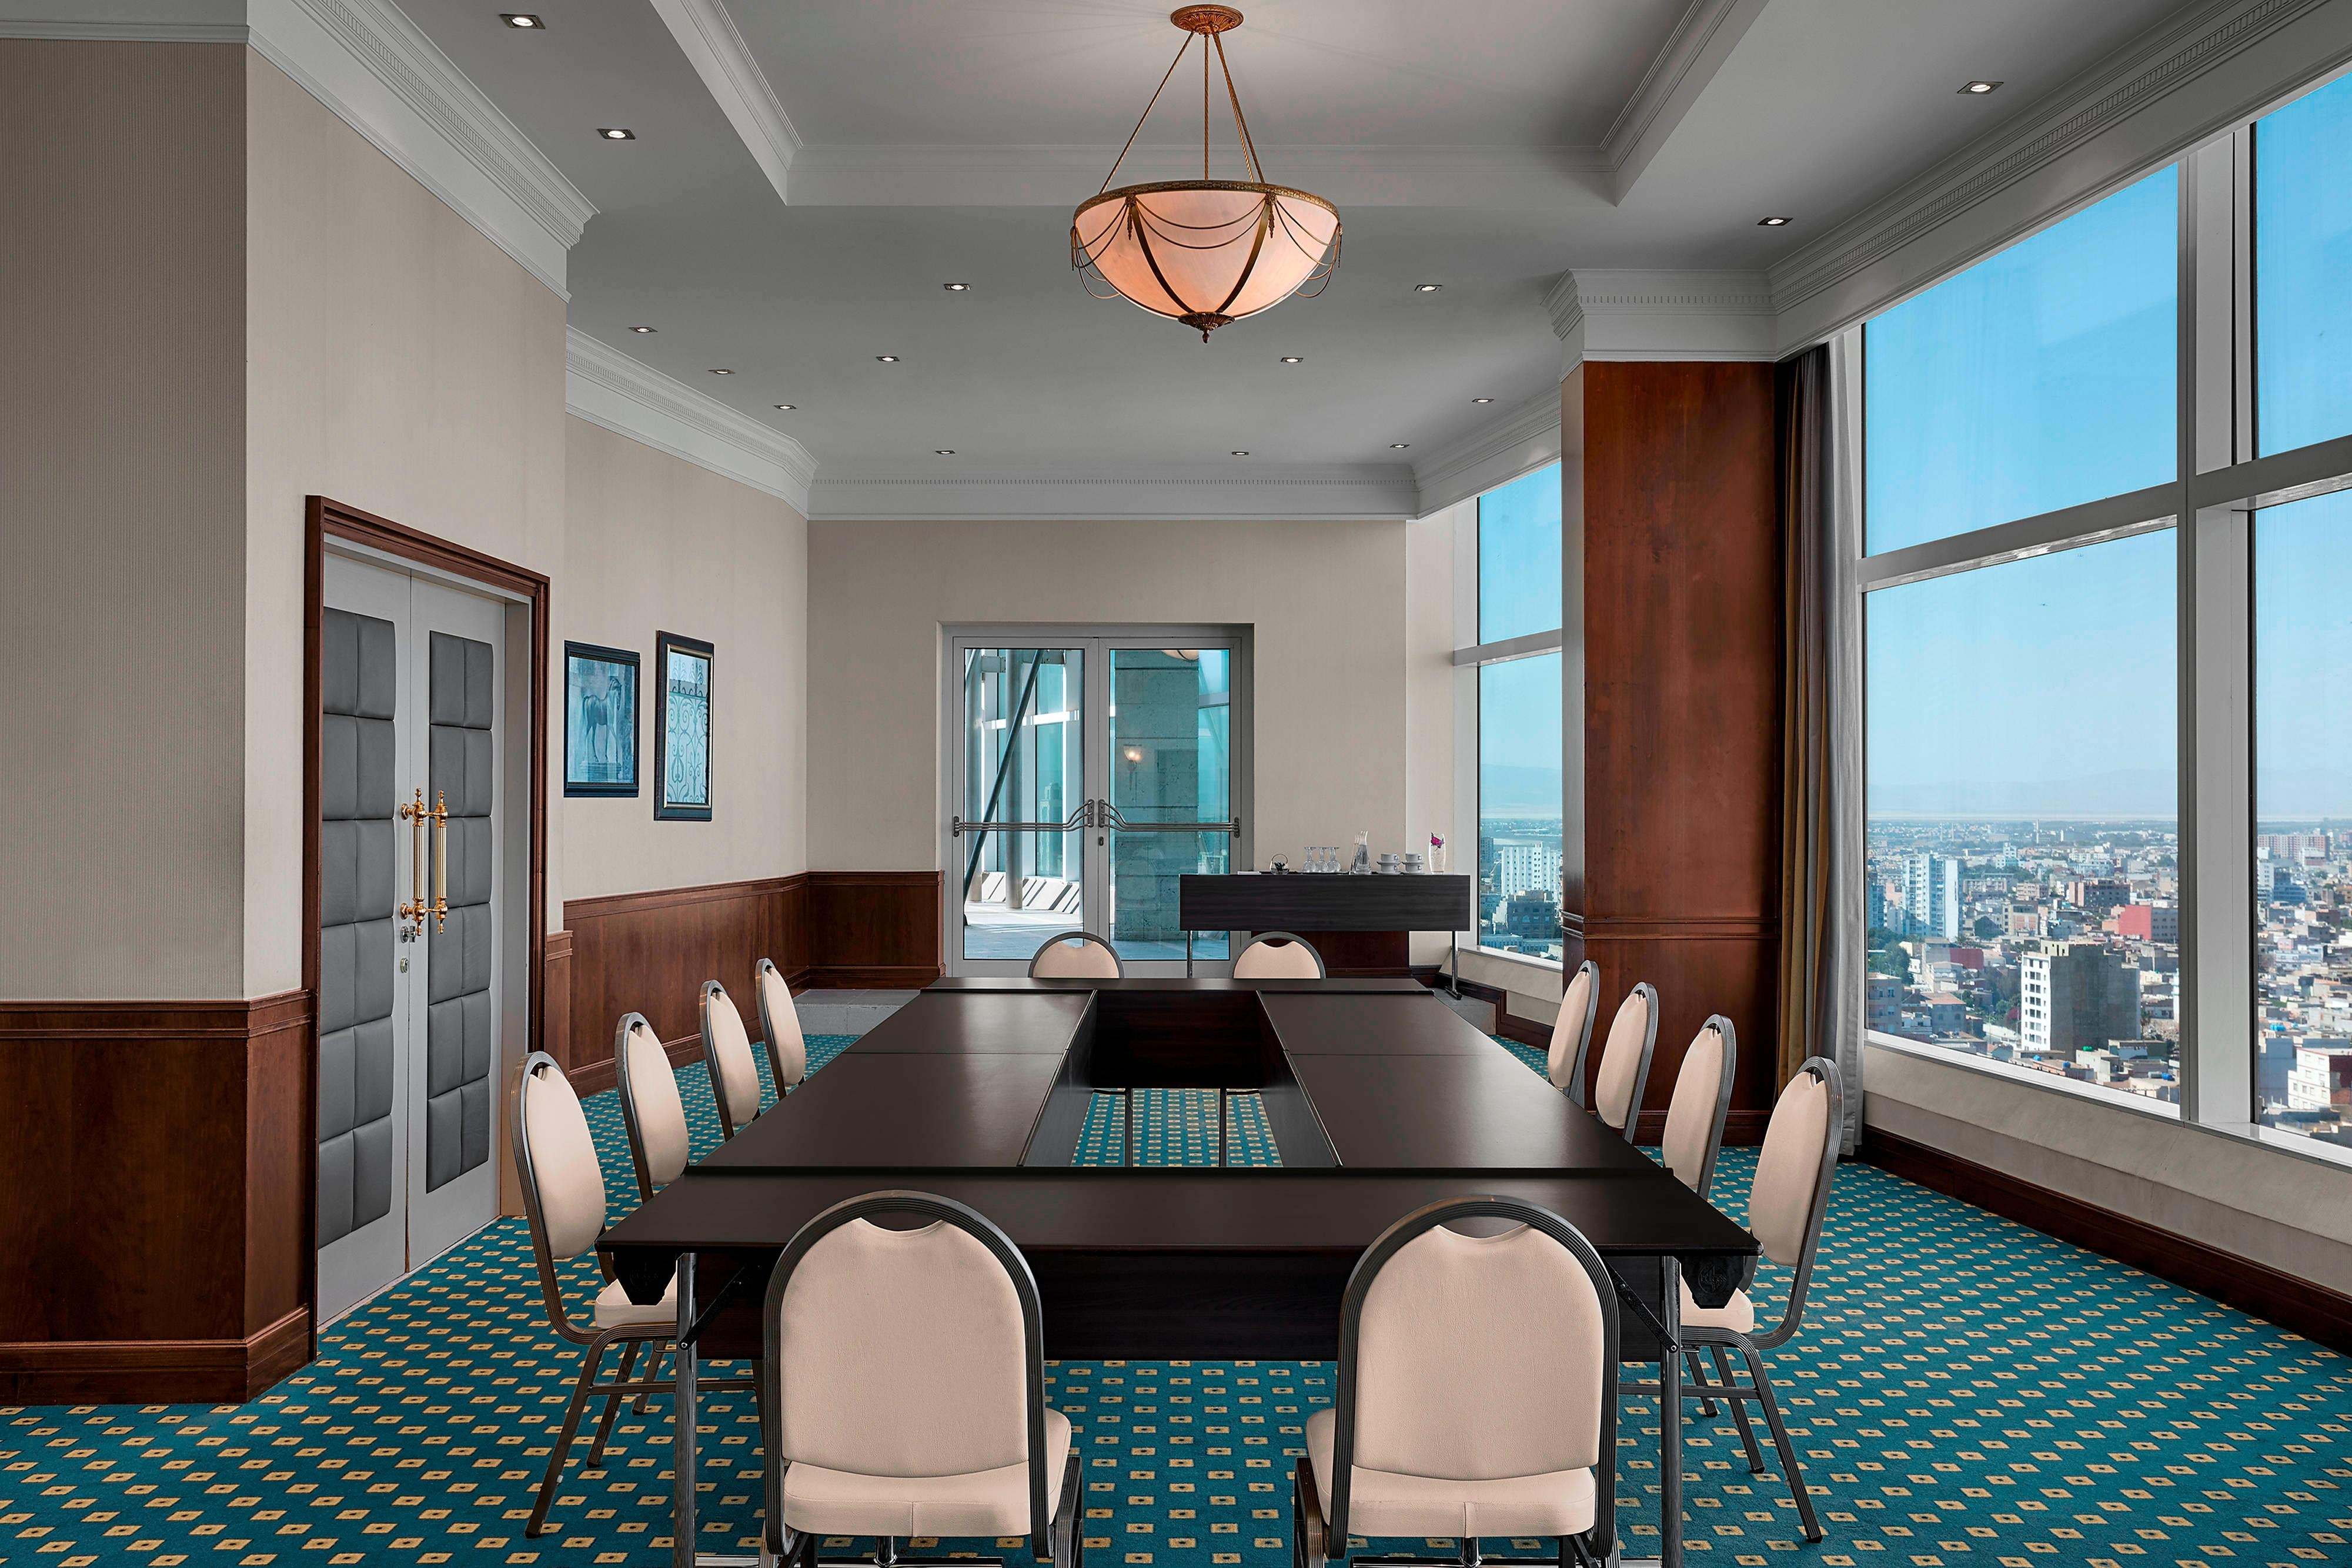 Mostaganem Meeting Room with View